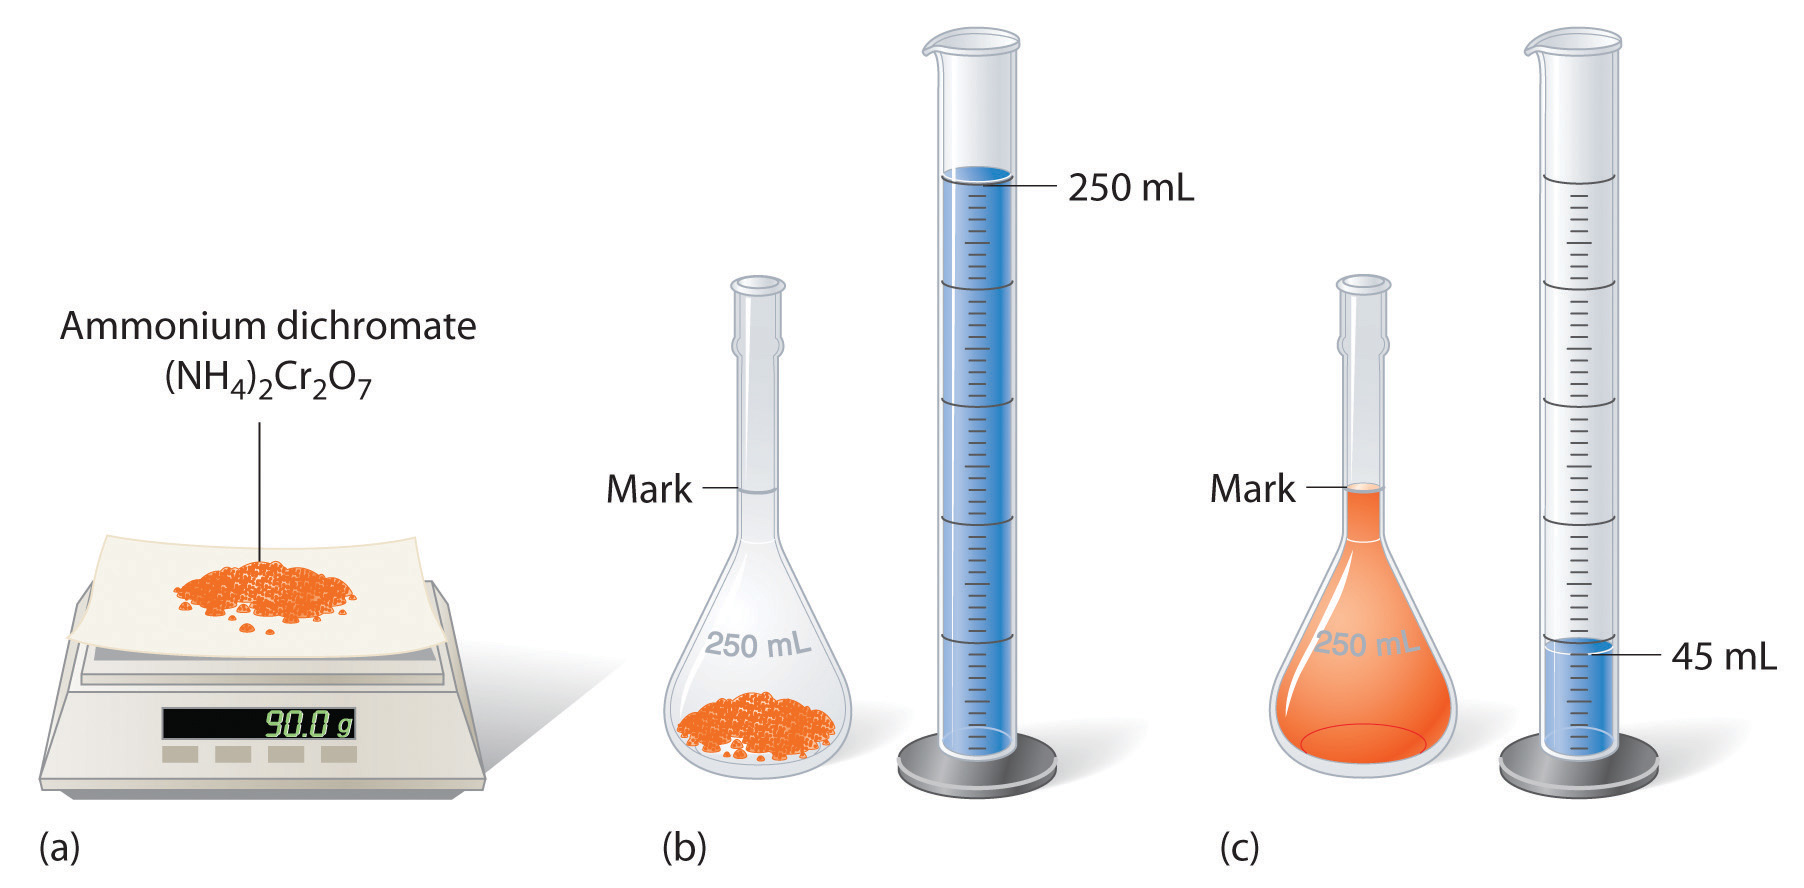 preparation of a standard solution of 4 preparation of standard solutions solutions of accurately known strength are called standard solutions a standard solution contains a known weight of reagent in a definite volume of solution.